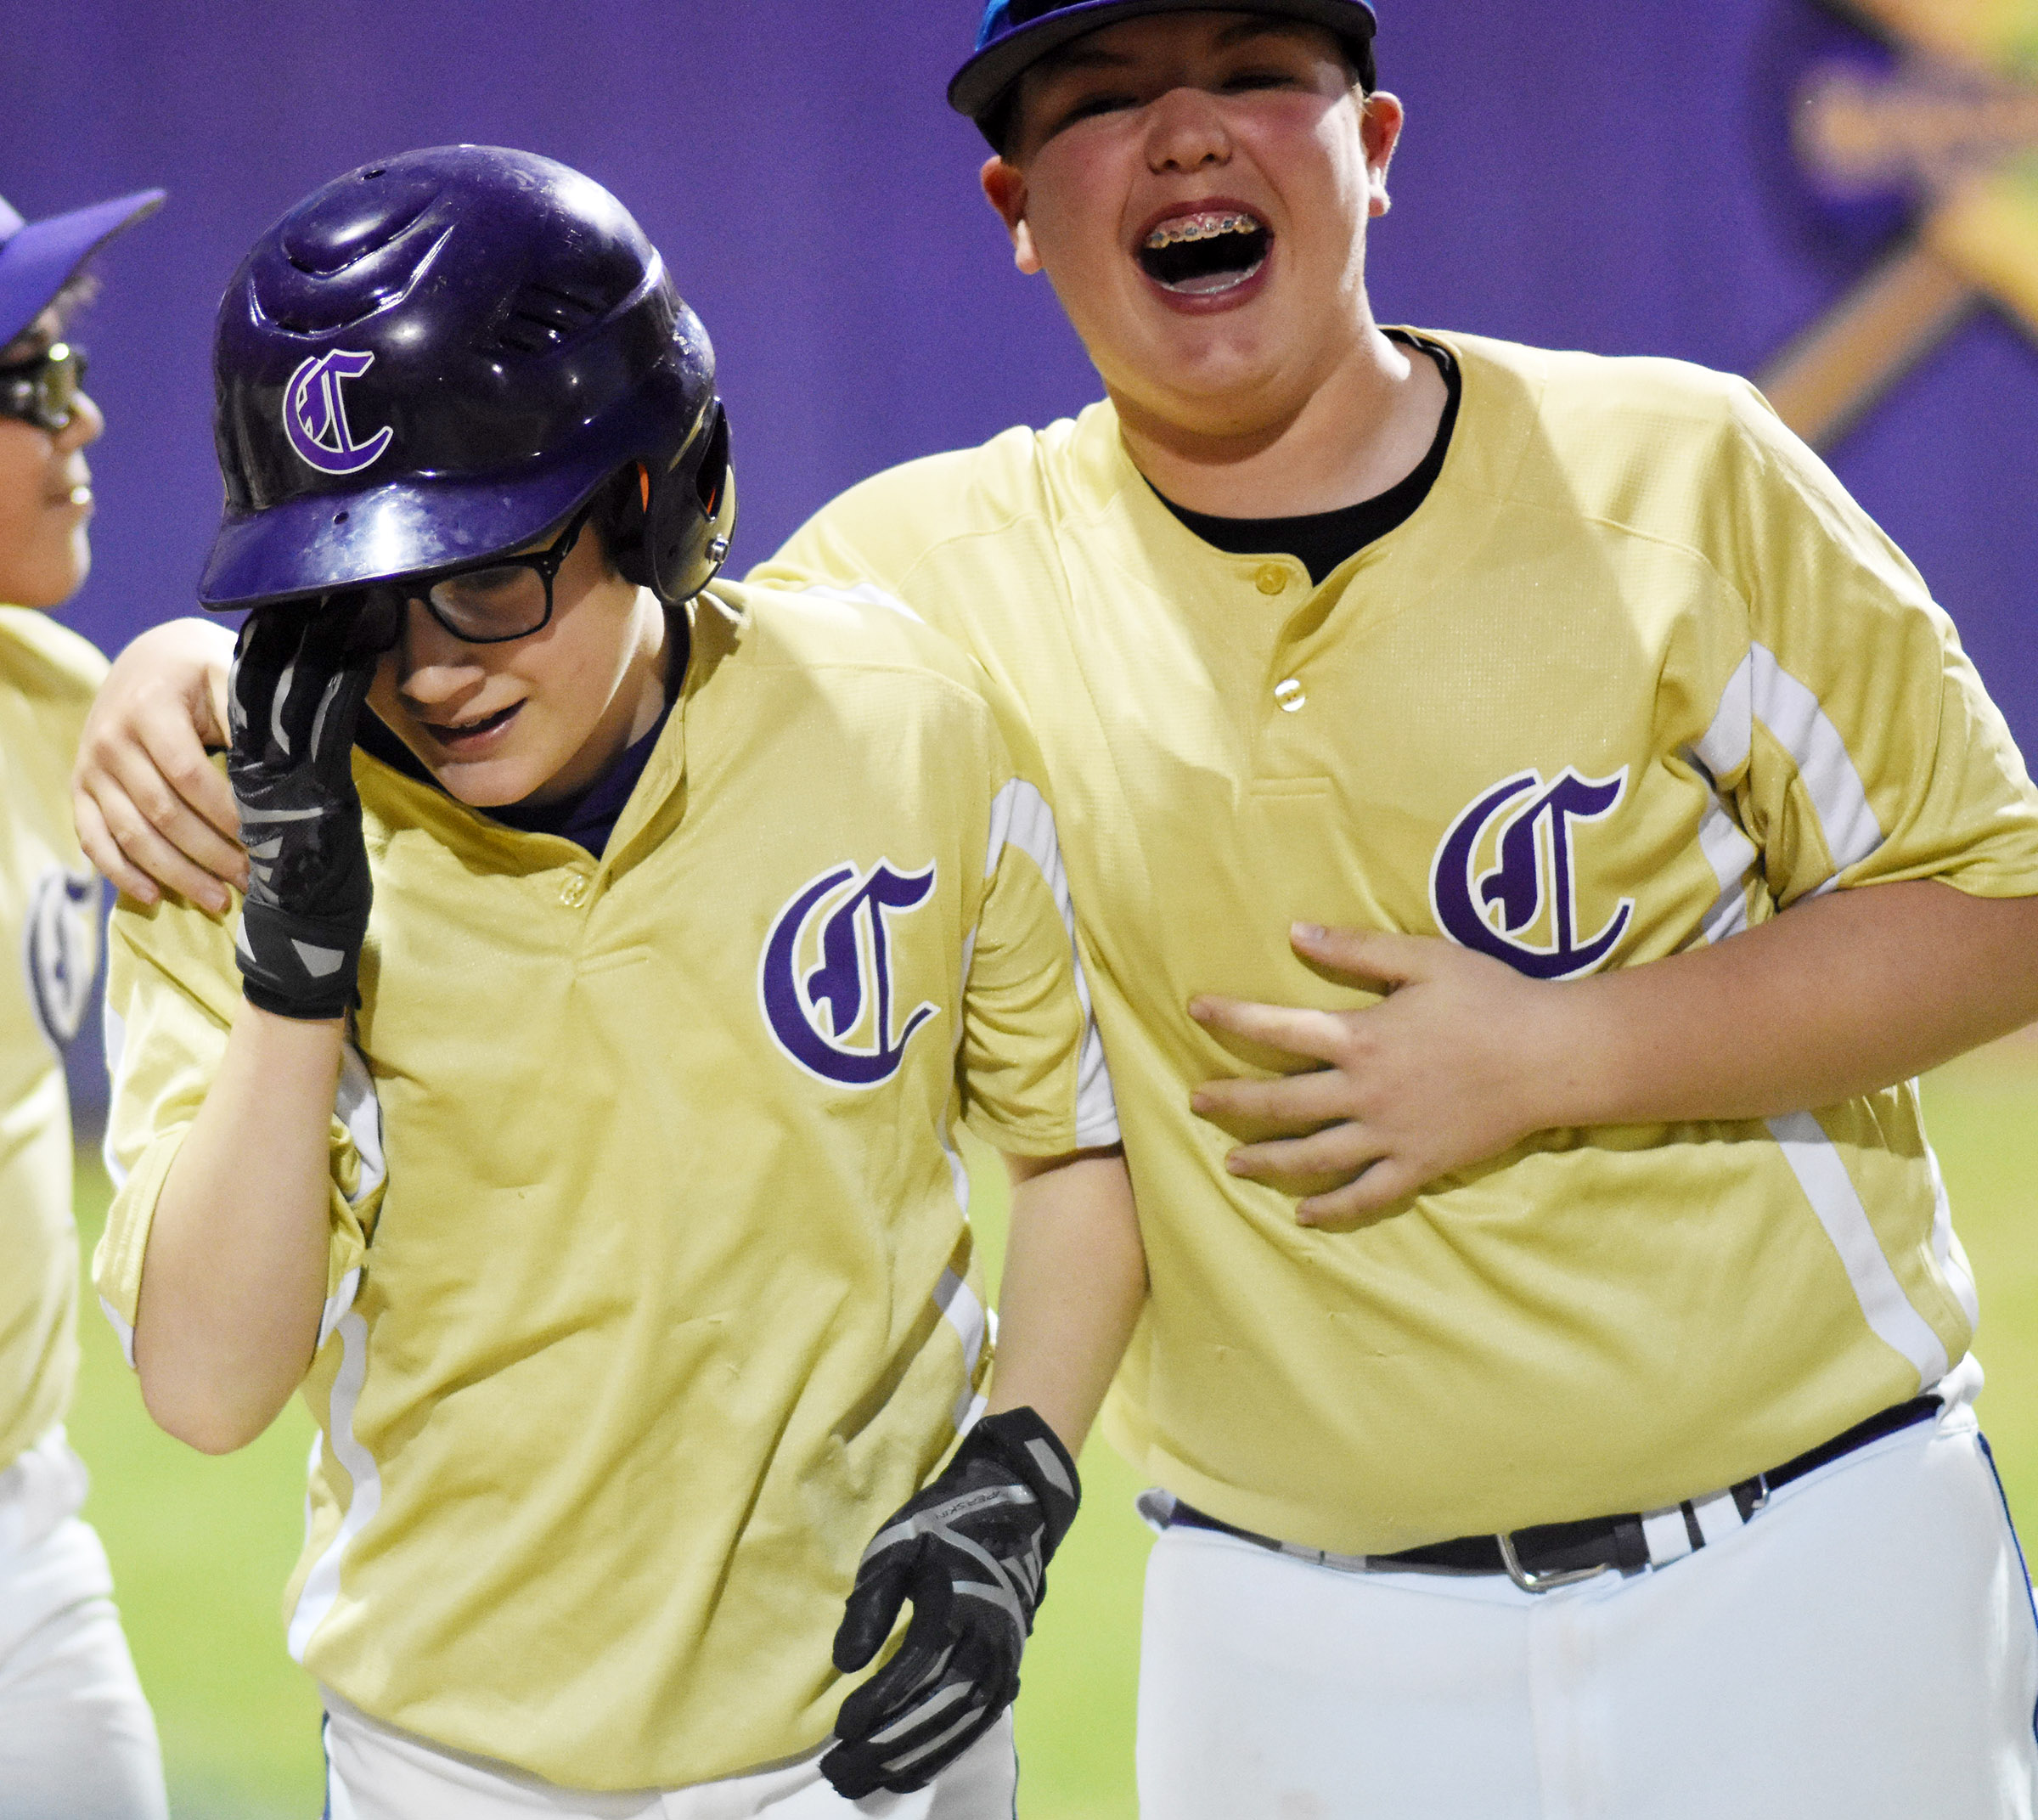 CMS seventh-grader Brady Hoosier celebrates with teammate Ryan Grubbs, a sixth-grader, after hitting an inside-the-park home run.